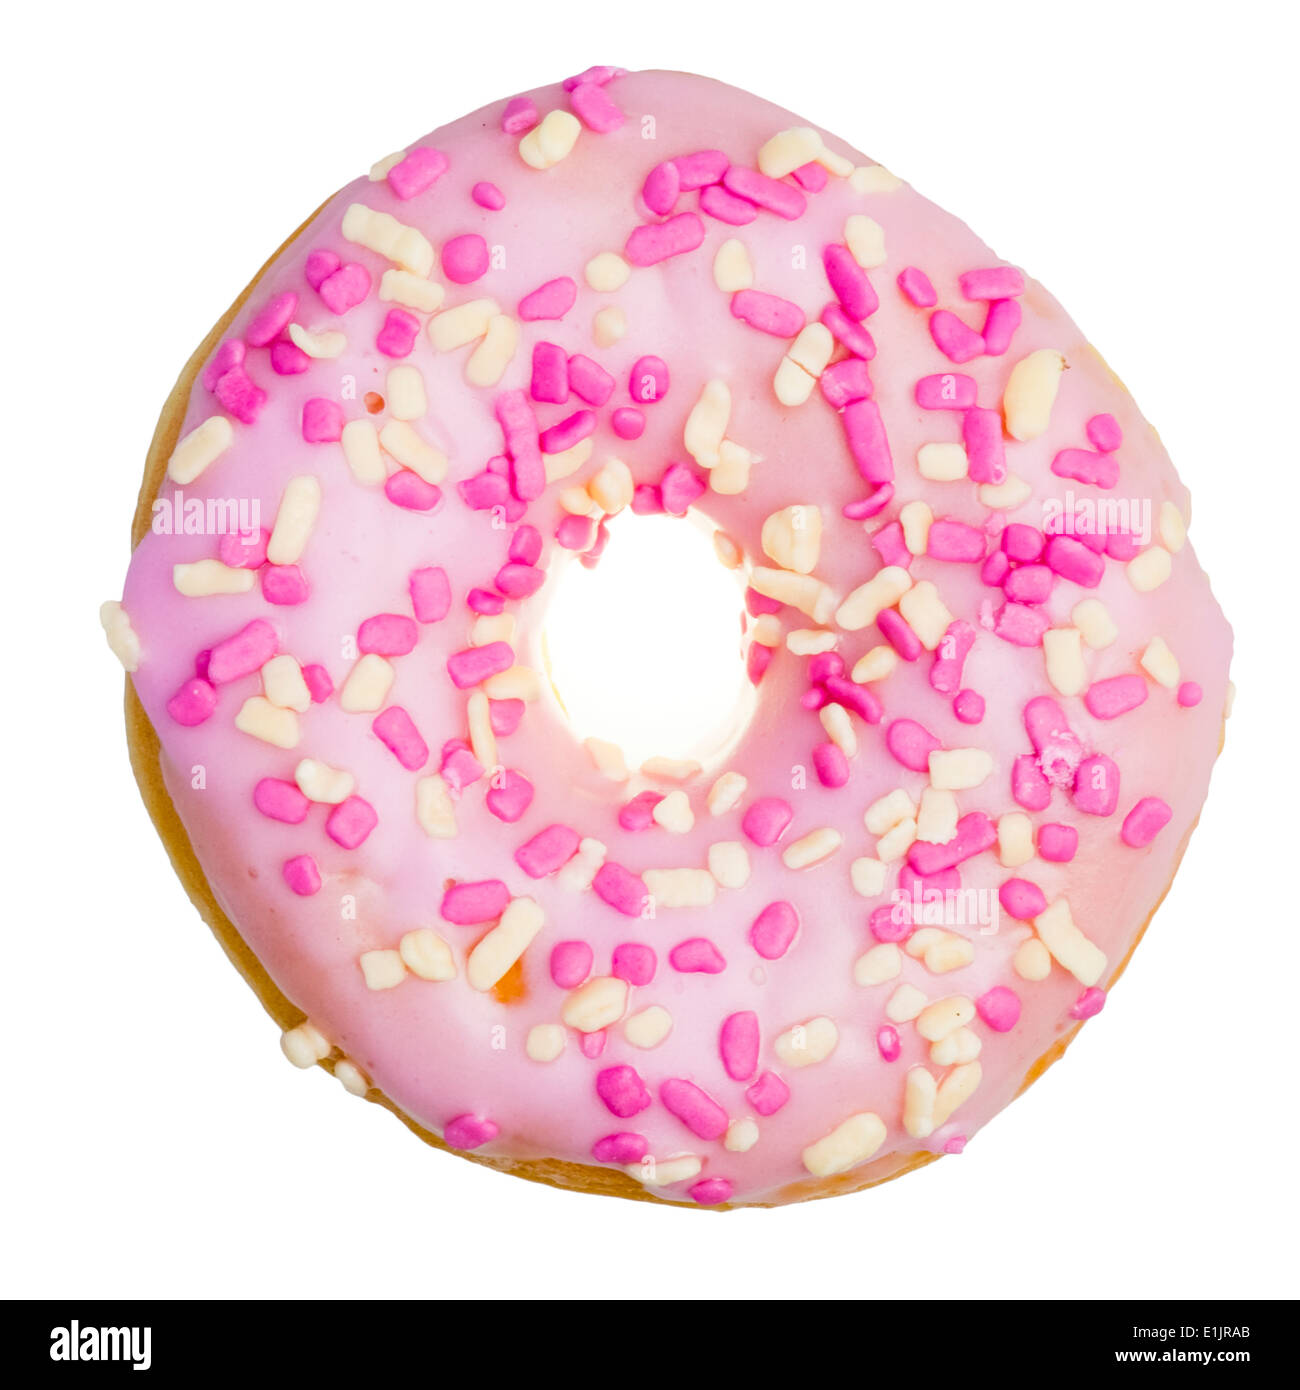 Doughnut ring with sprinkles & pink icing. Single Donut glazed with strawberry glaze isolated on a white background. - Stock Image